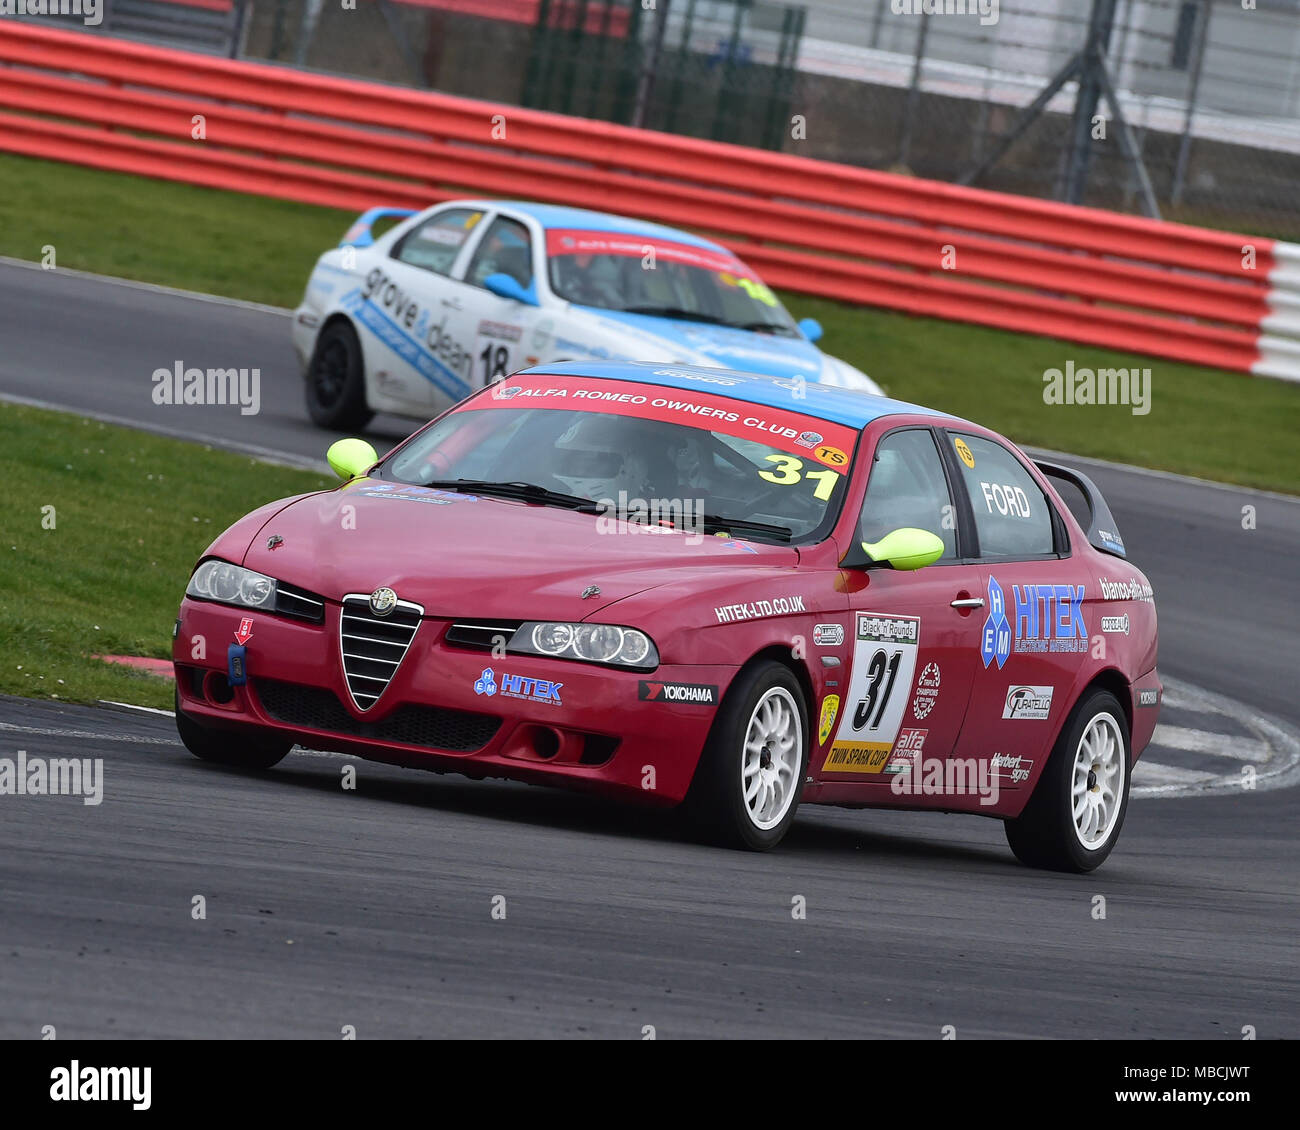 Alfa Romeo 156 Stock Photos & Alfa Romeo 156 Stock Images